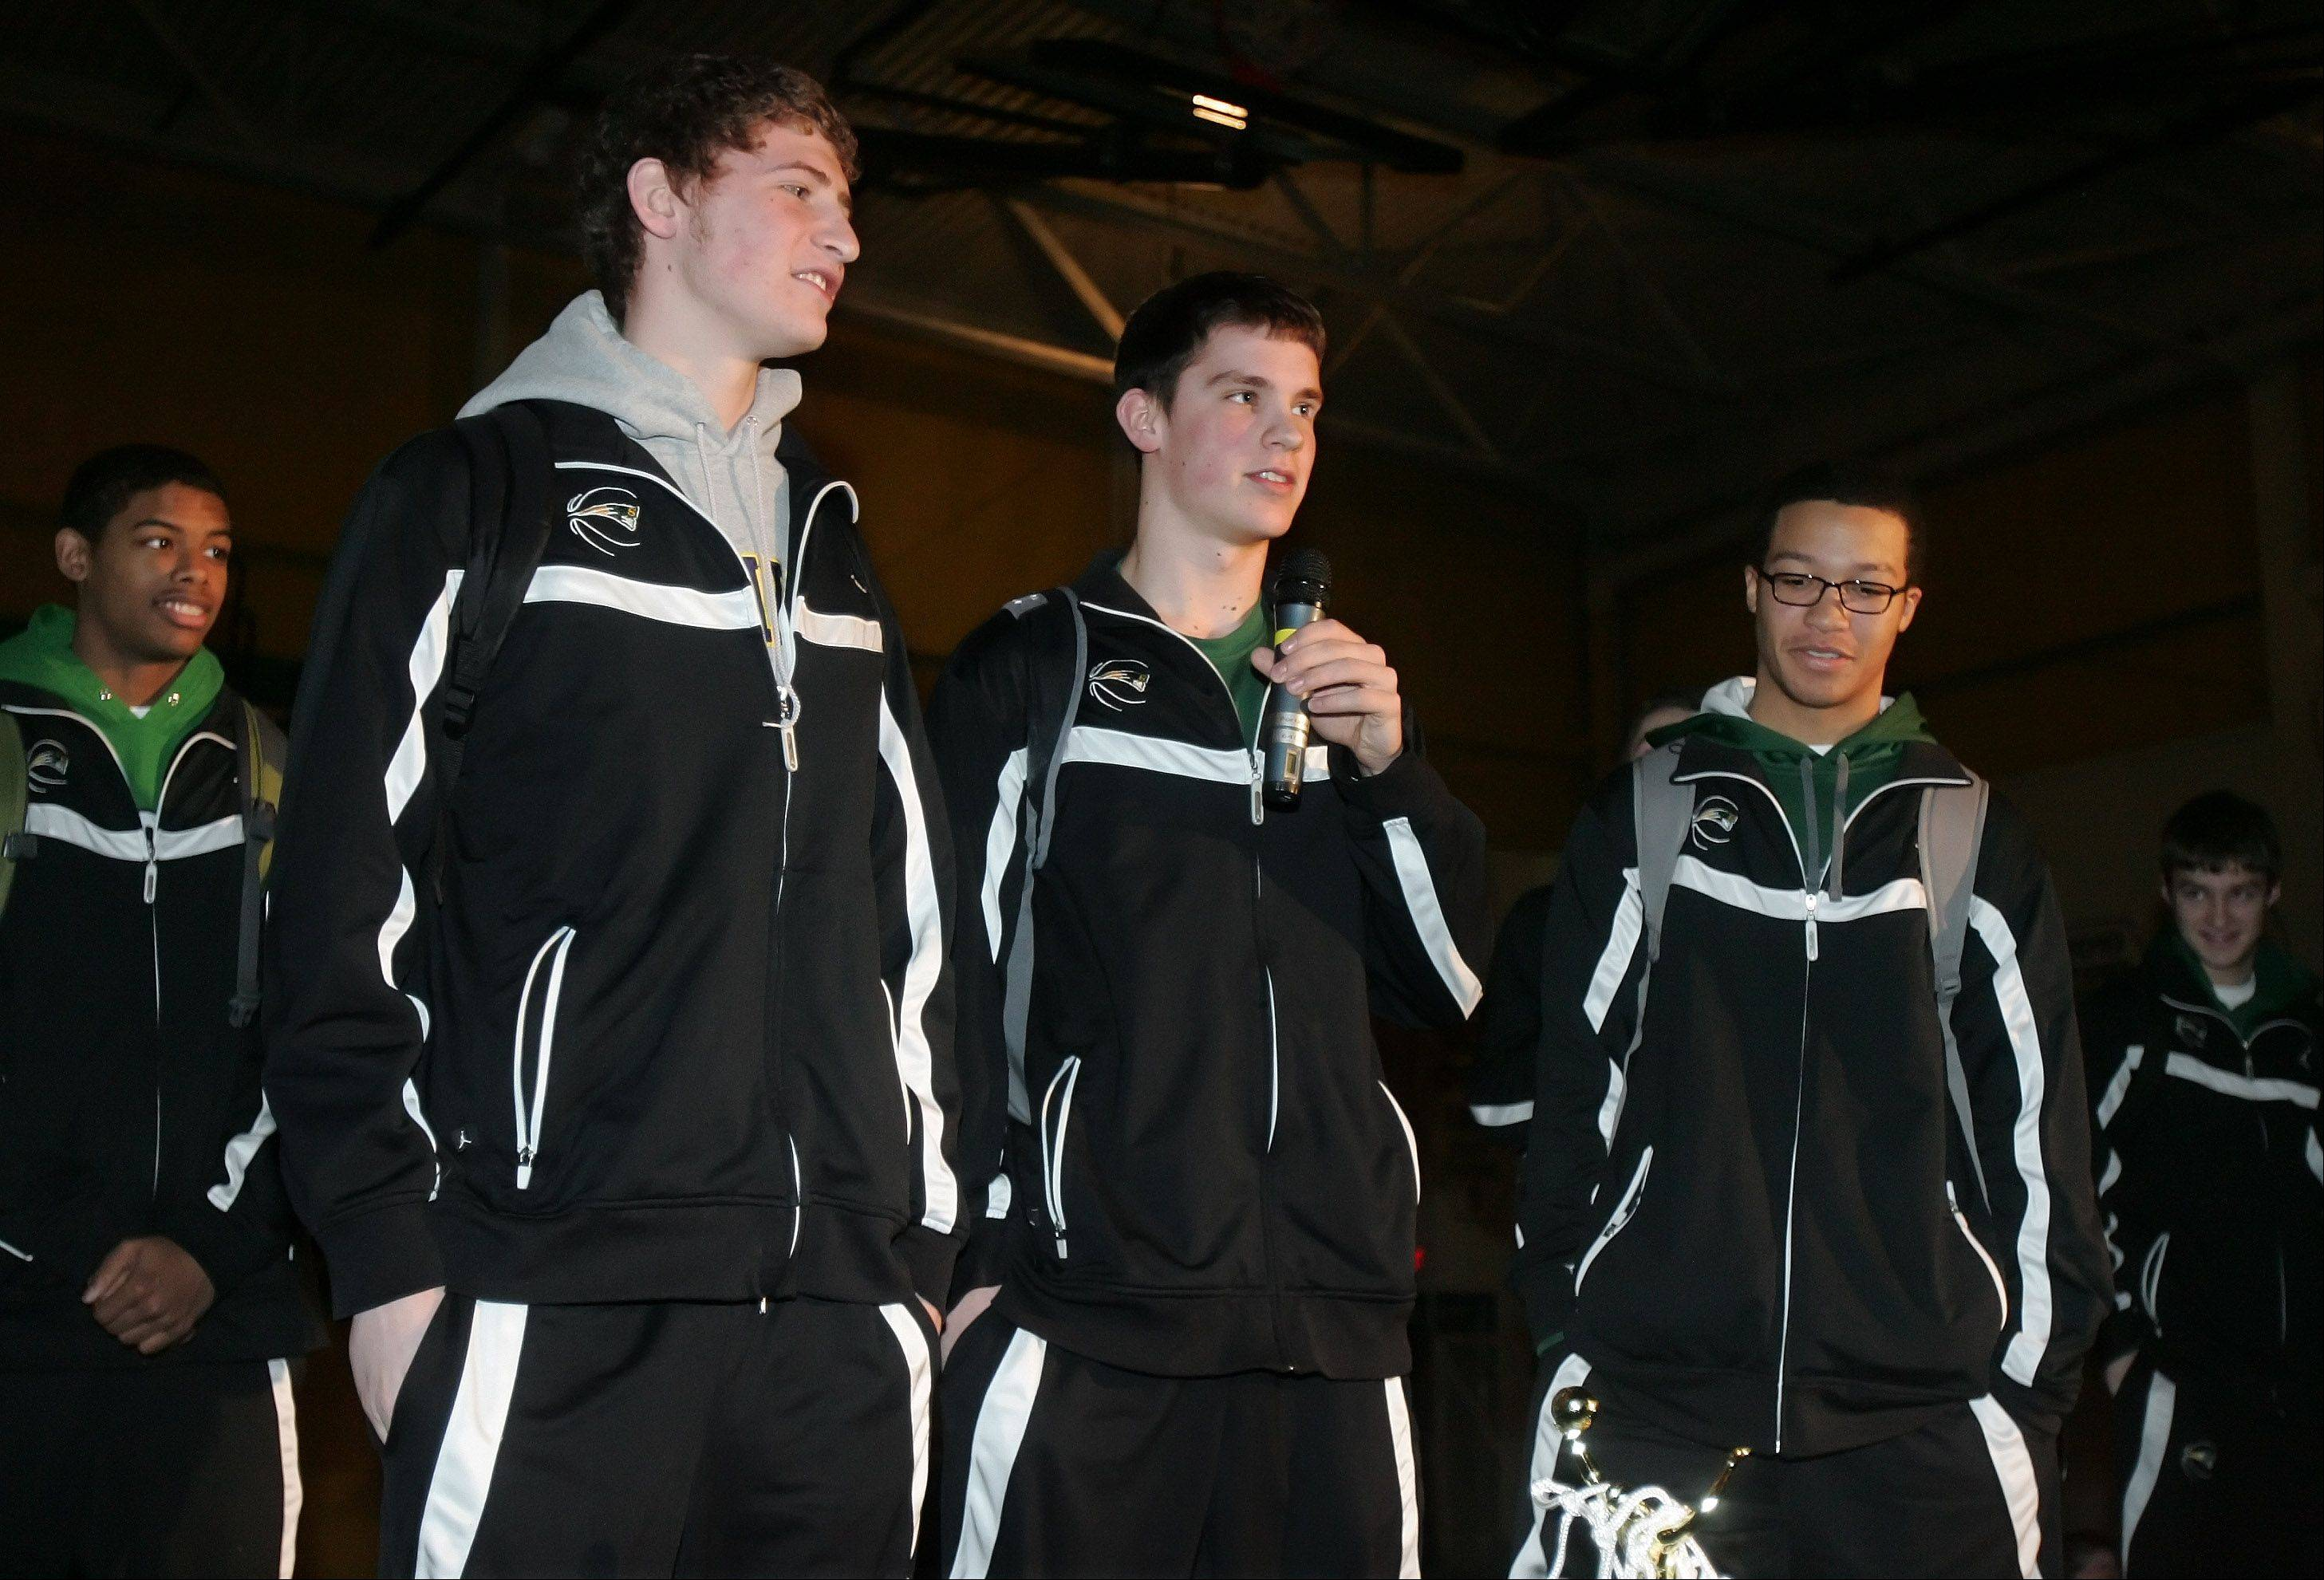 Stevenson High School boys basketball captains Andy Stempel, left, Matt Morrissey and Jalen Brunson speak to the fans at the school Monday as they celebrate the team's second-place finish in the state Class 4A tournament at Carver Arena in Peoria.